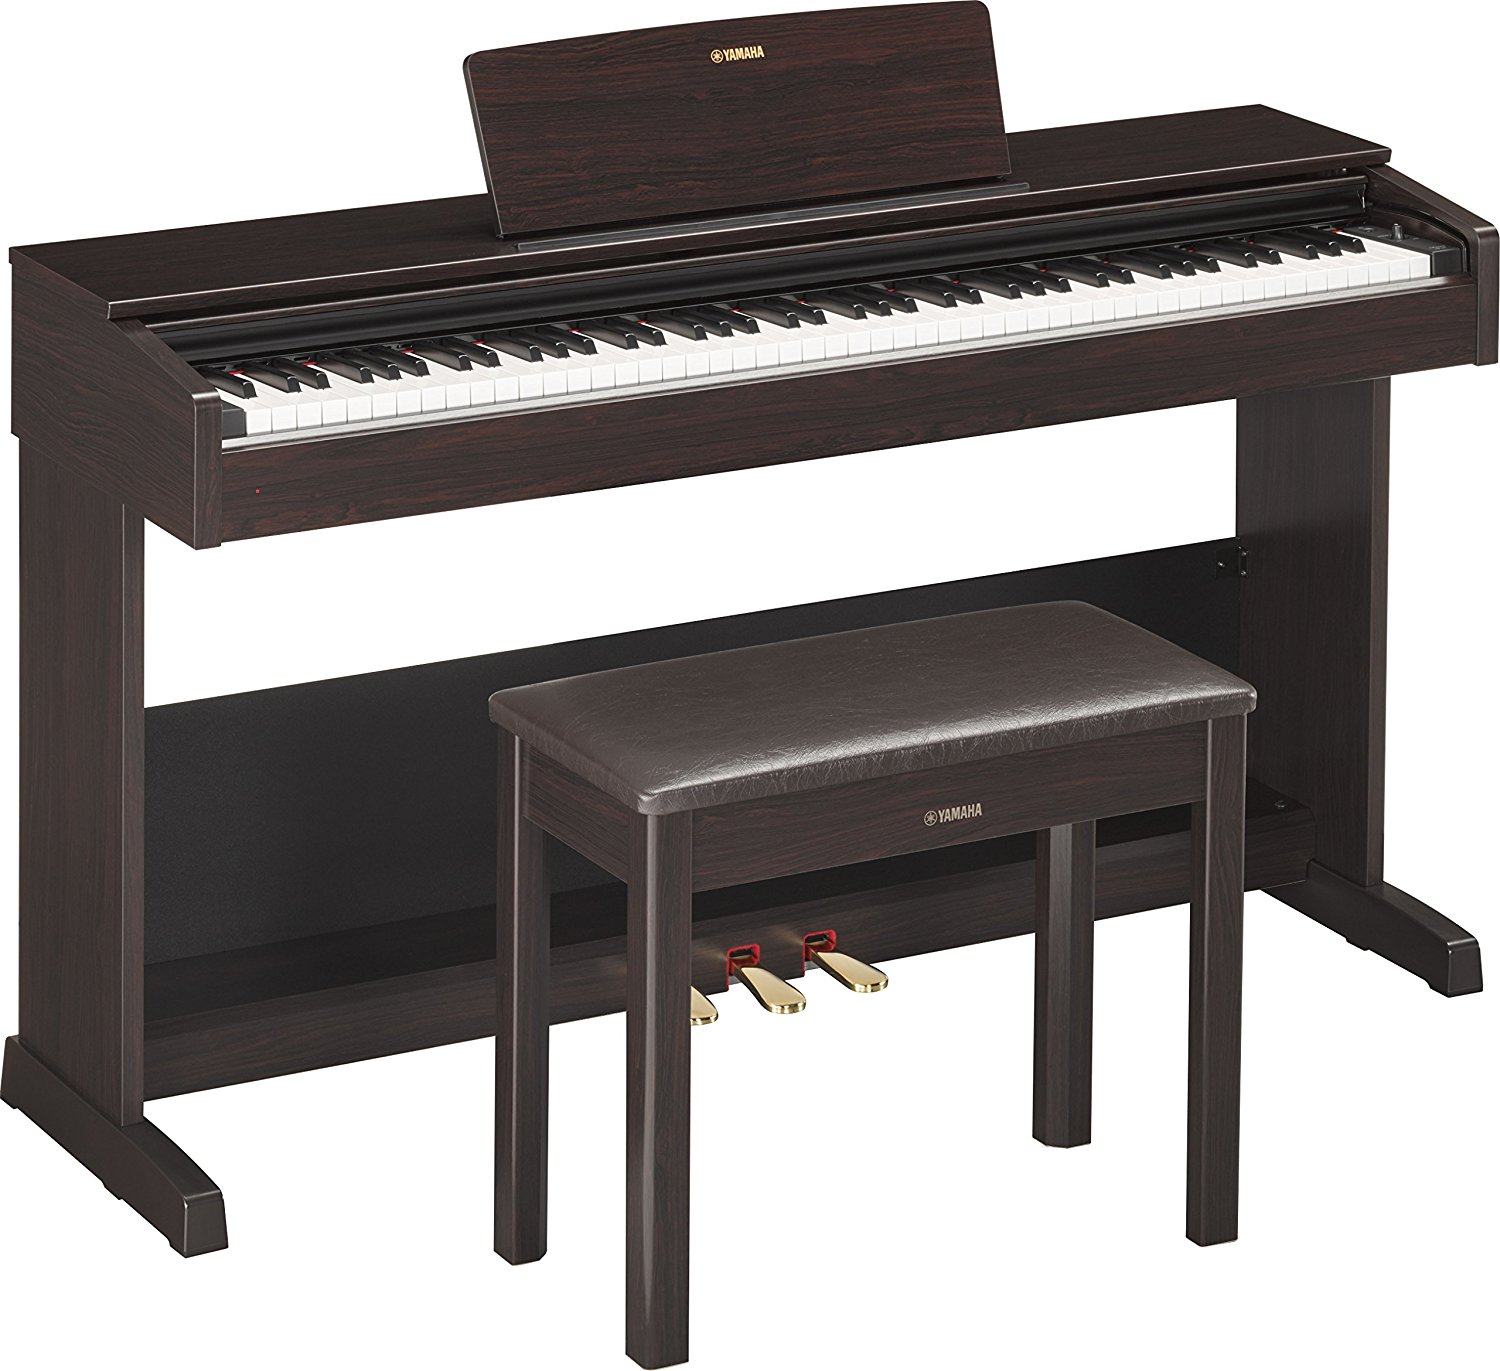 Yamaha YDP103R Arius Series Digital Console Piano with Bench